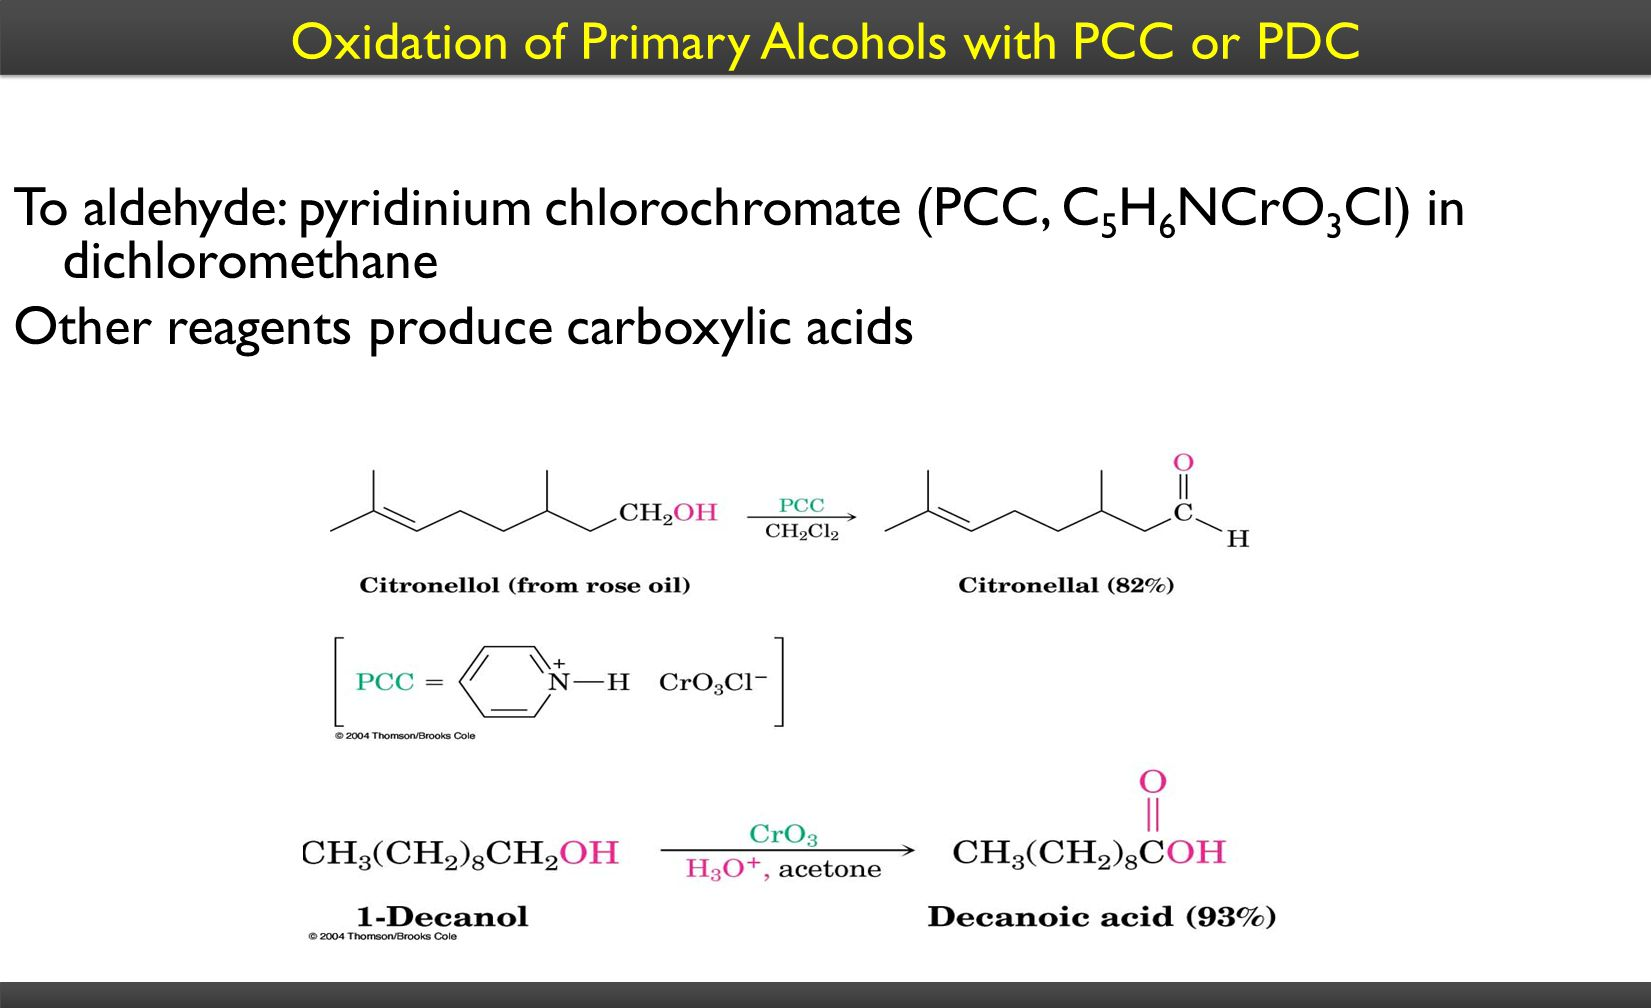 Oxidation of Primary Alcohols with PCC or PDC To aldehyde: pyridinium chlorochromate (PCC, C 5 H 6 NCrO 3 Cl) in dichloromethane Other reagents produc